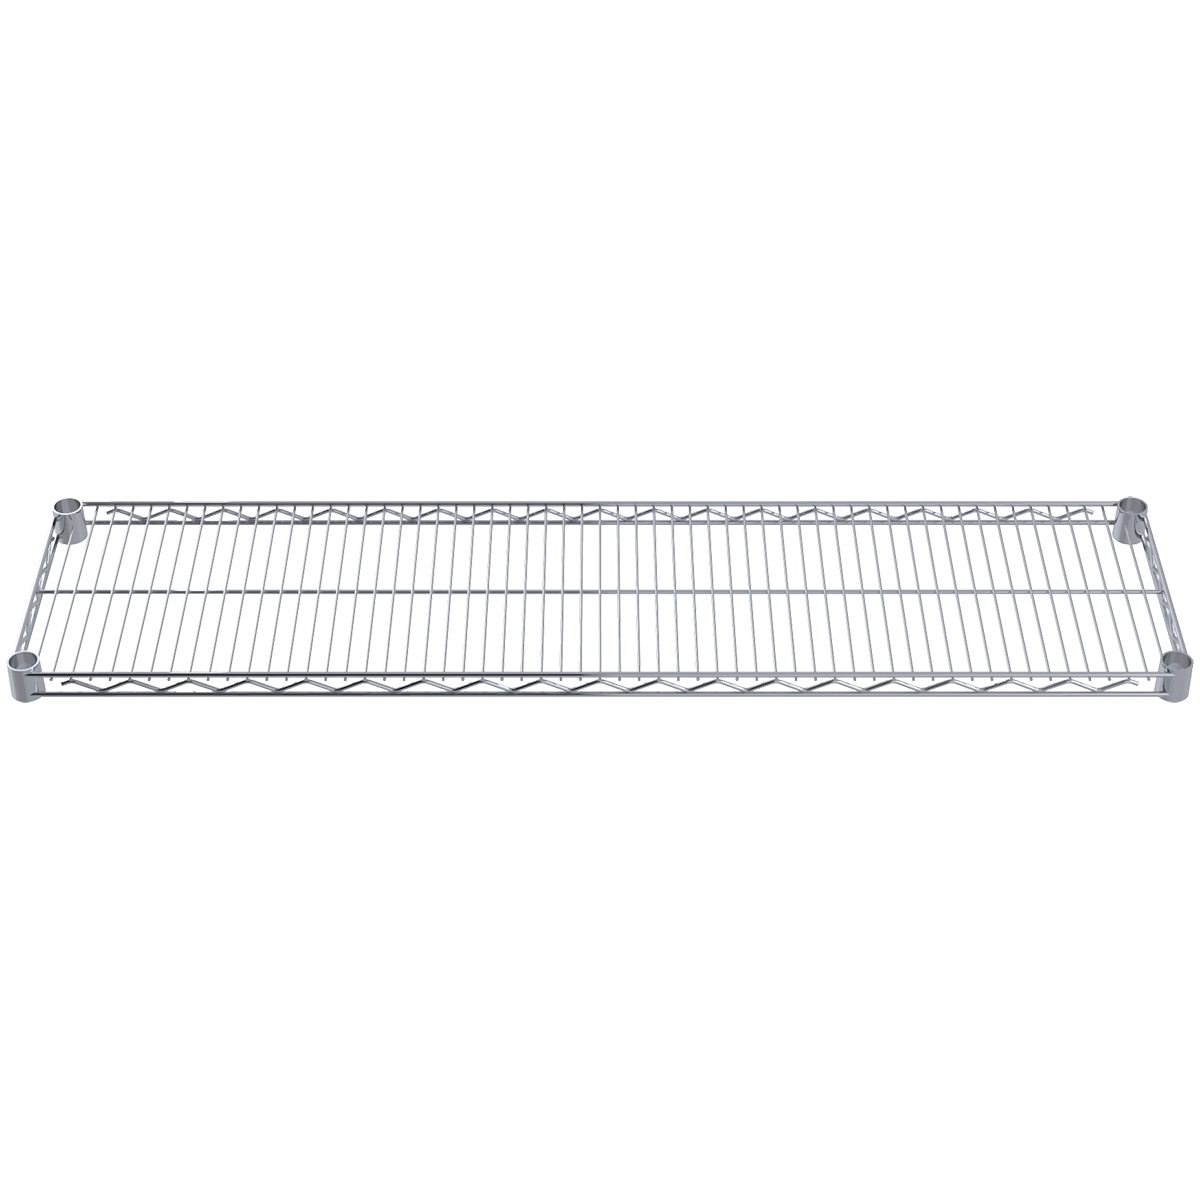 Item DISCONTINUED by Manufacturer.  12 x 48 Wire Shelf, Chrome (AWS1248SHELF).  This item sold in carton quantities of 4.